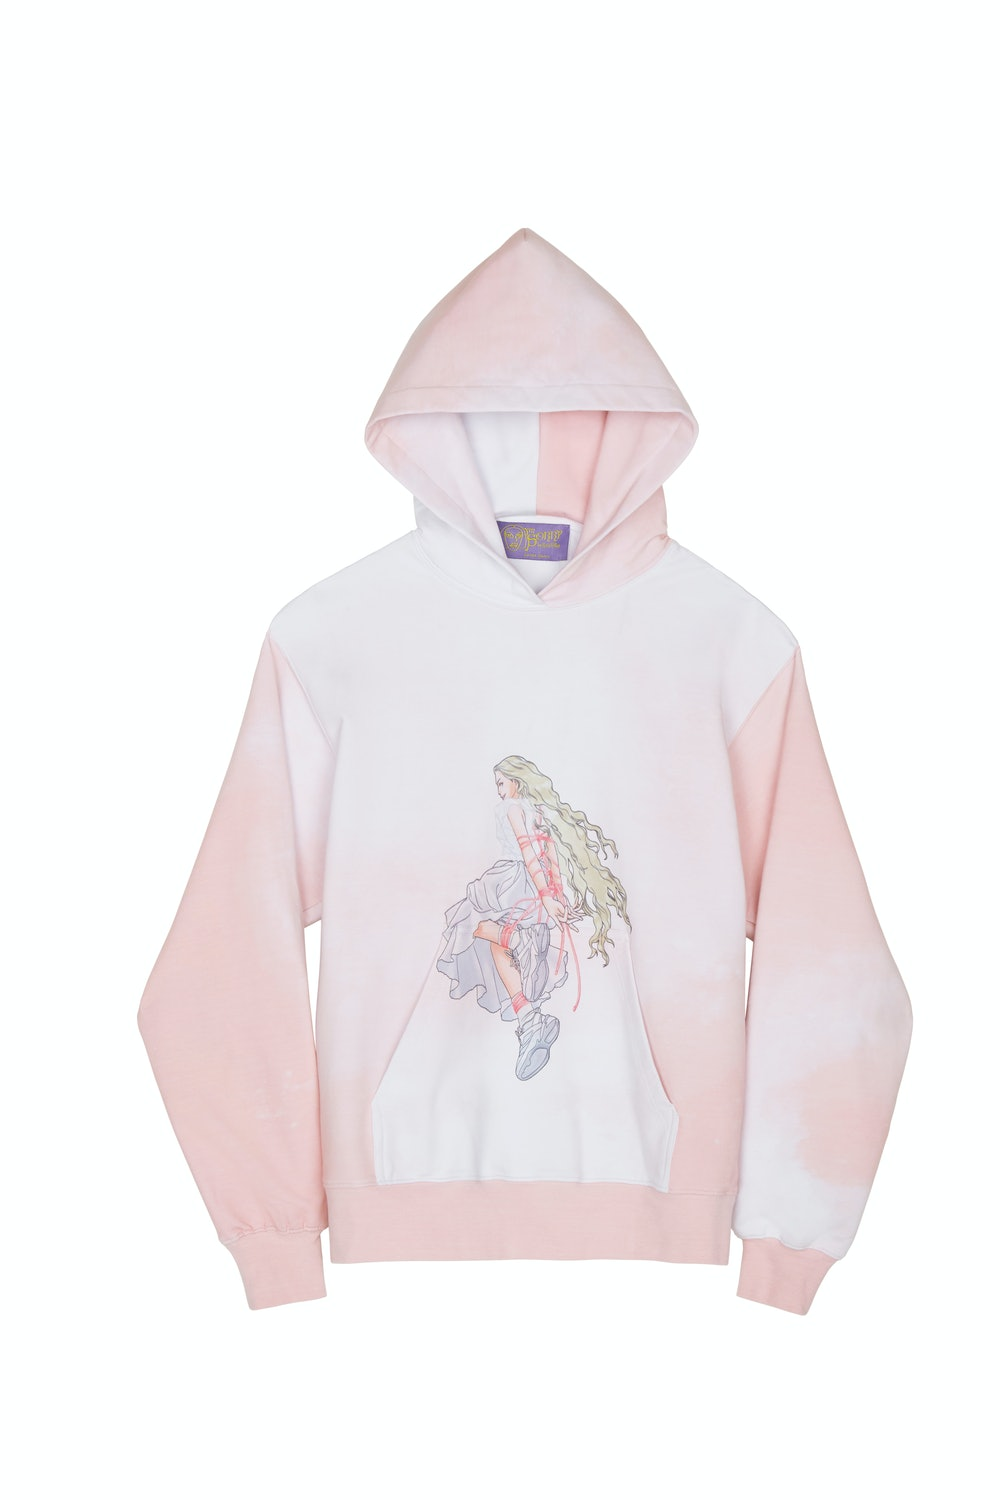 SSENSE Exclusive Pink & White Graphic Pullover Hoodie